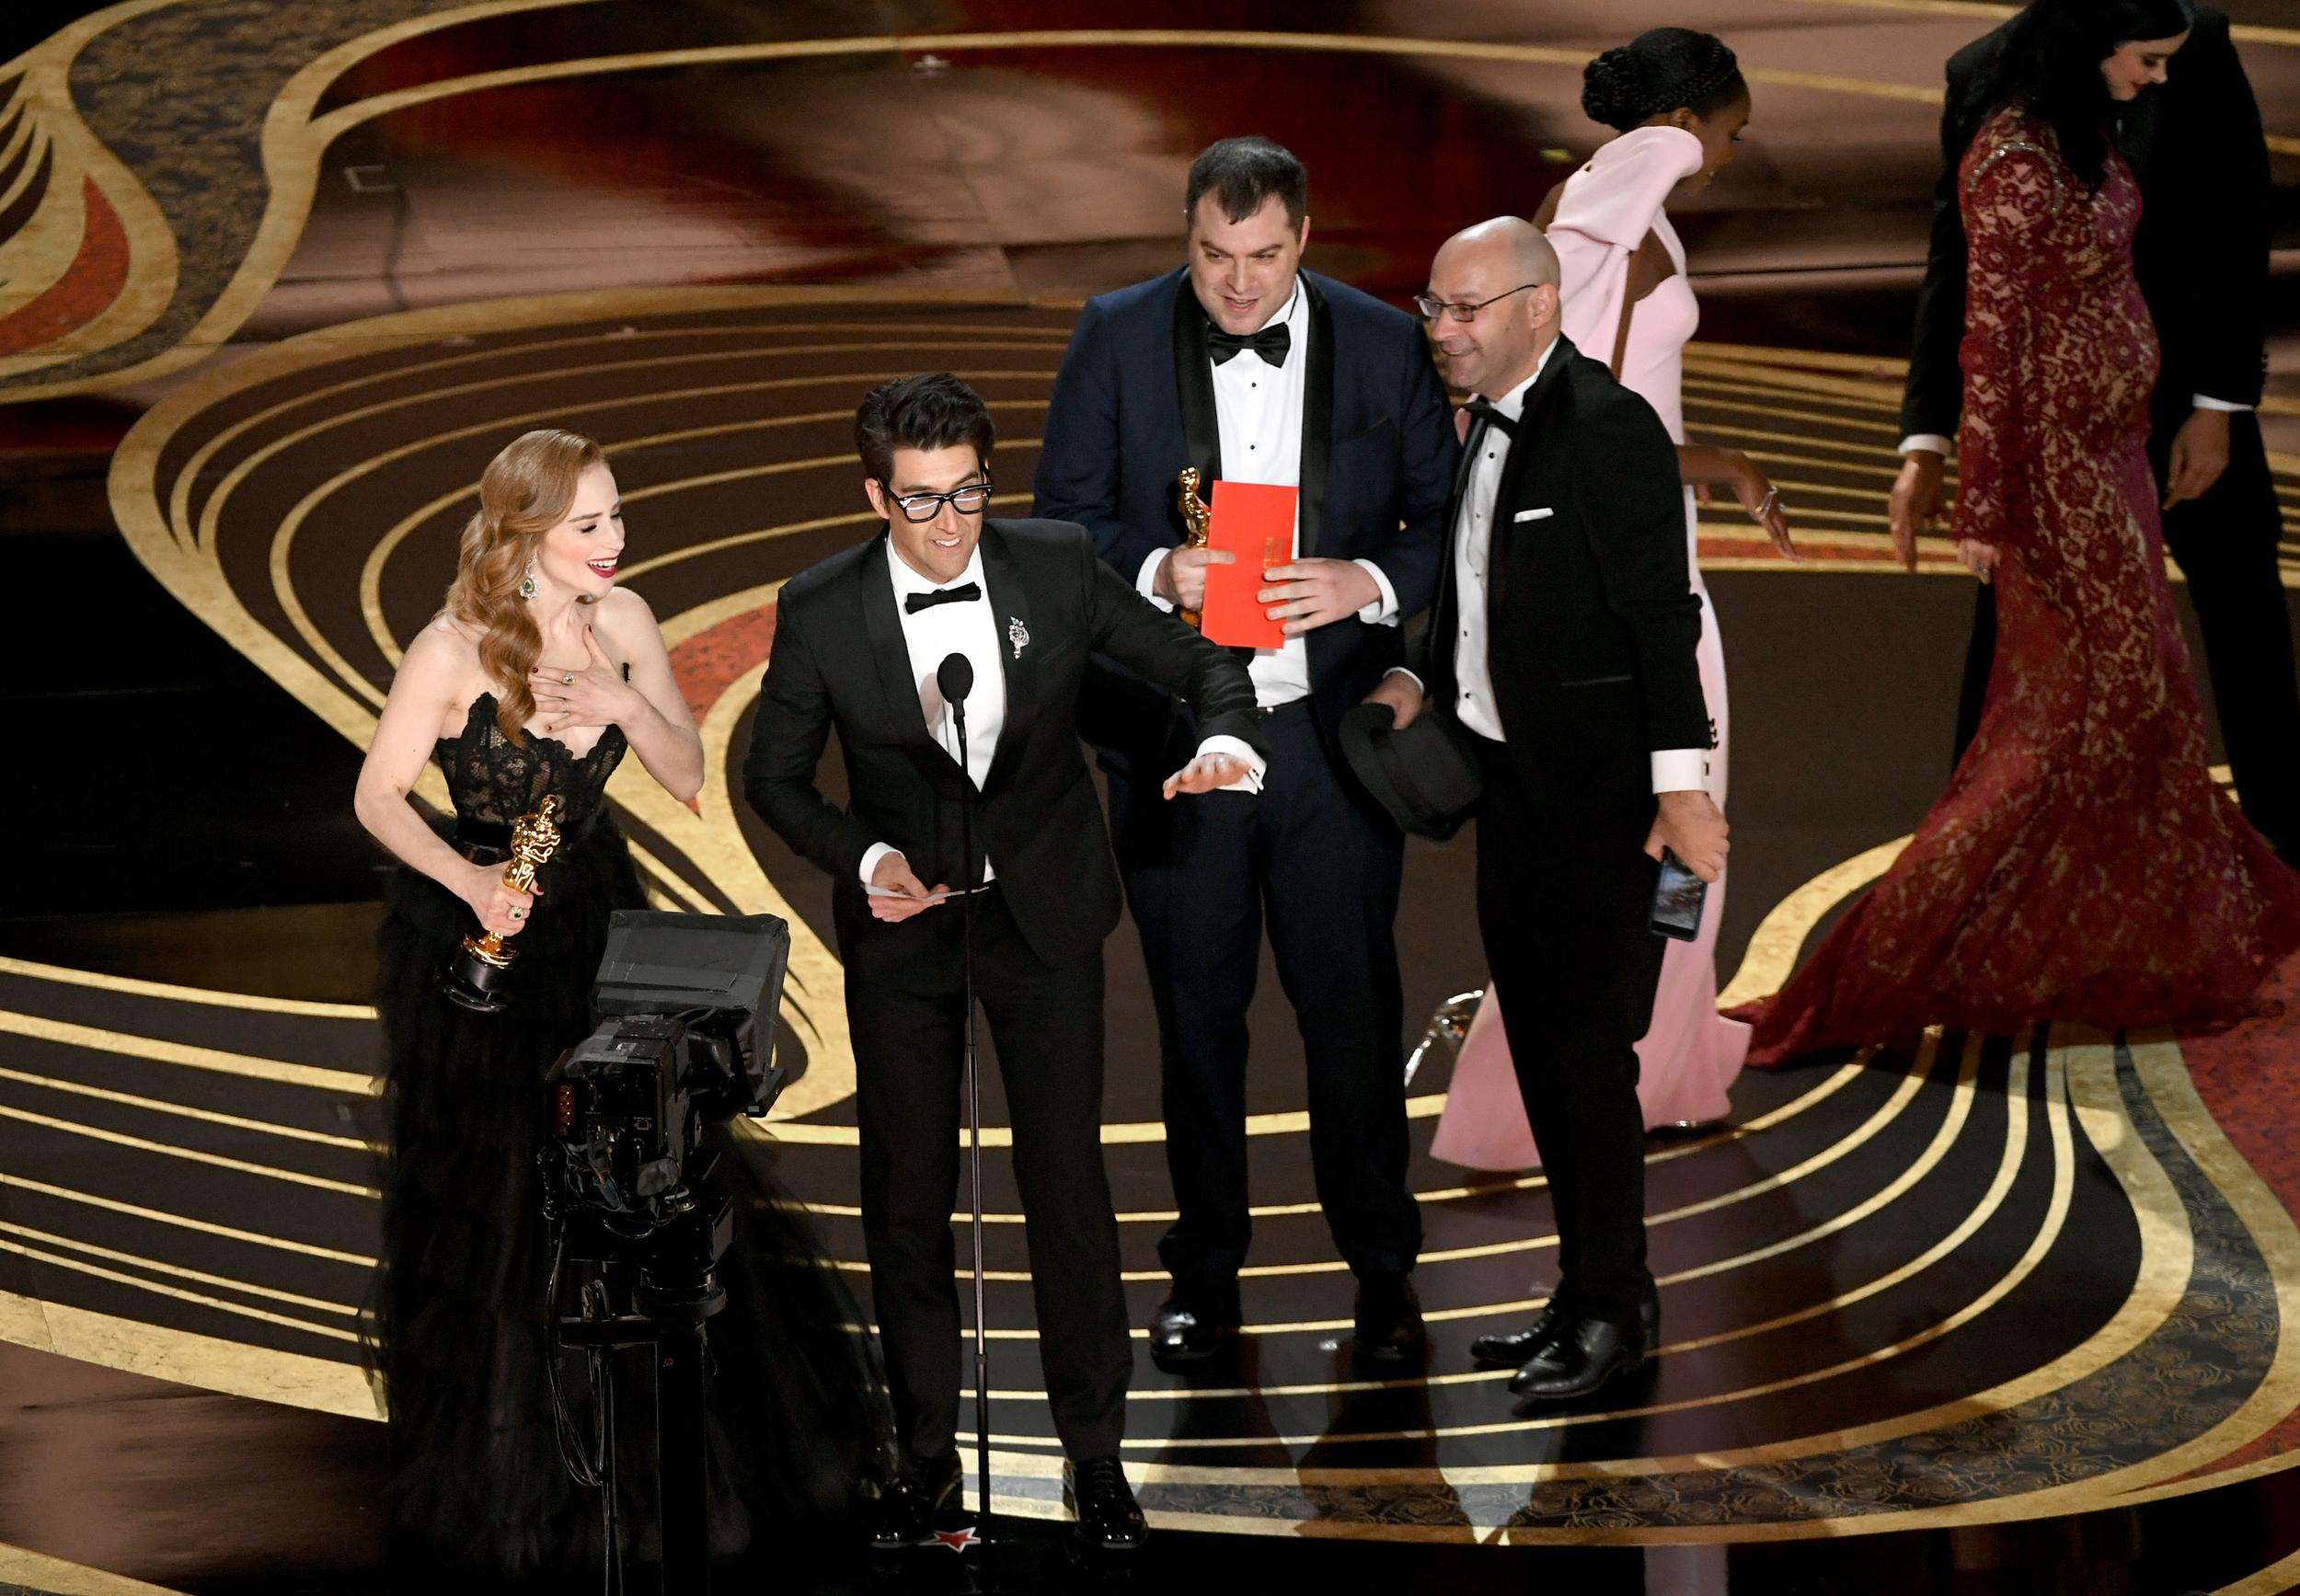 HOLLYWOOD, CALIFORNIA - FEBRUARY 24: (L - 3rd from R) Jaime Ray Newman and Guy Nattiv accept the Best Live Action Short Film award for 'Skin' onstage during the 91st Annual Academy Awards at Dolby Theatre on February 24, 2019 in Hollywood, California. (Photo by Kevin Winter/Getty Images)